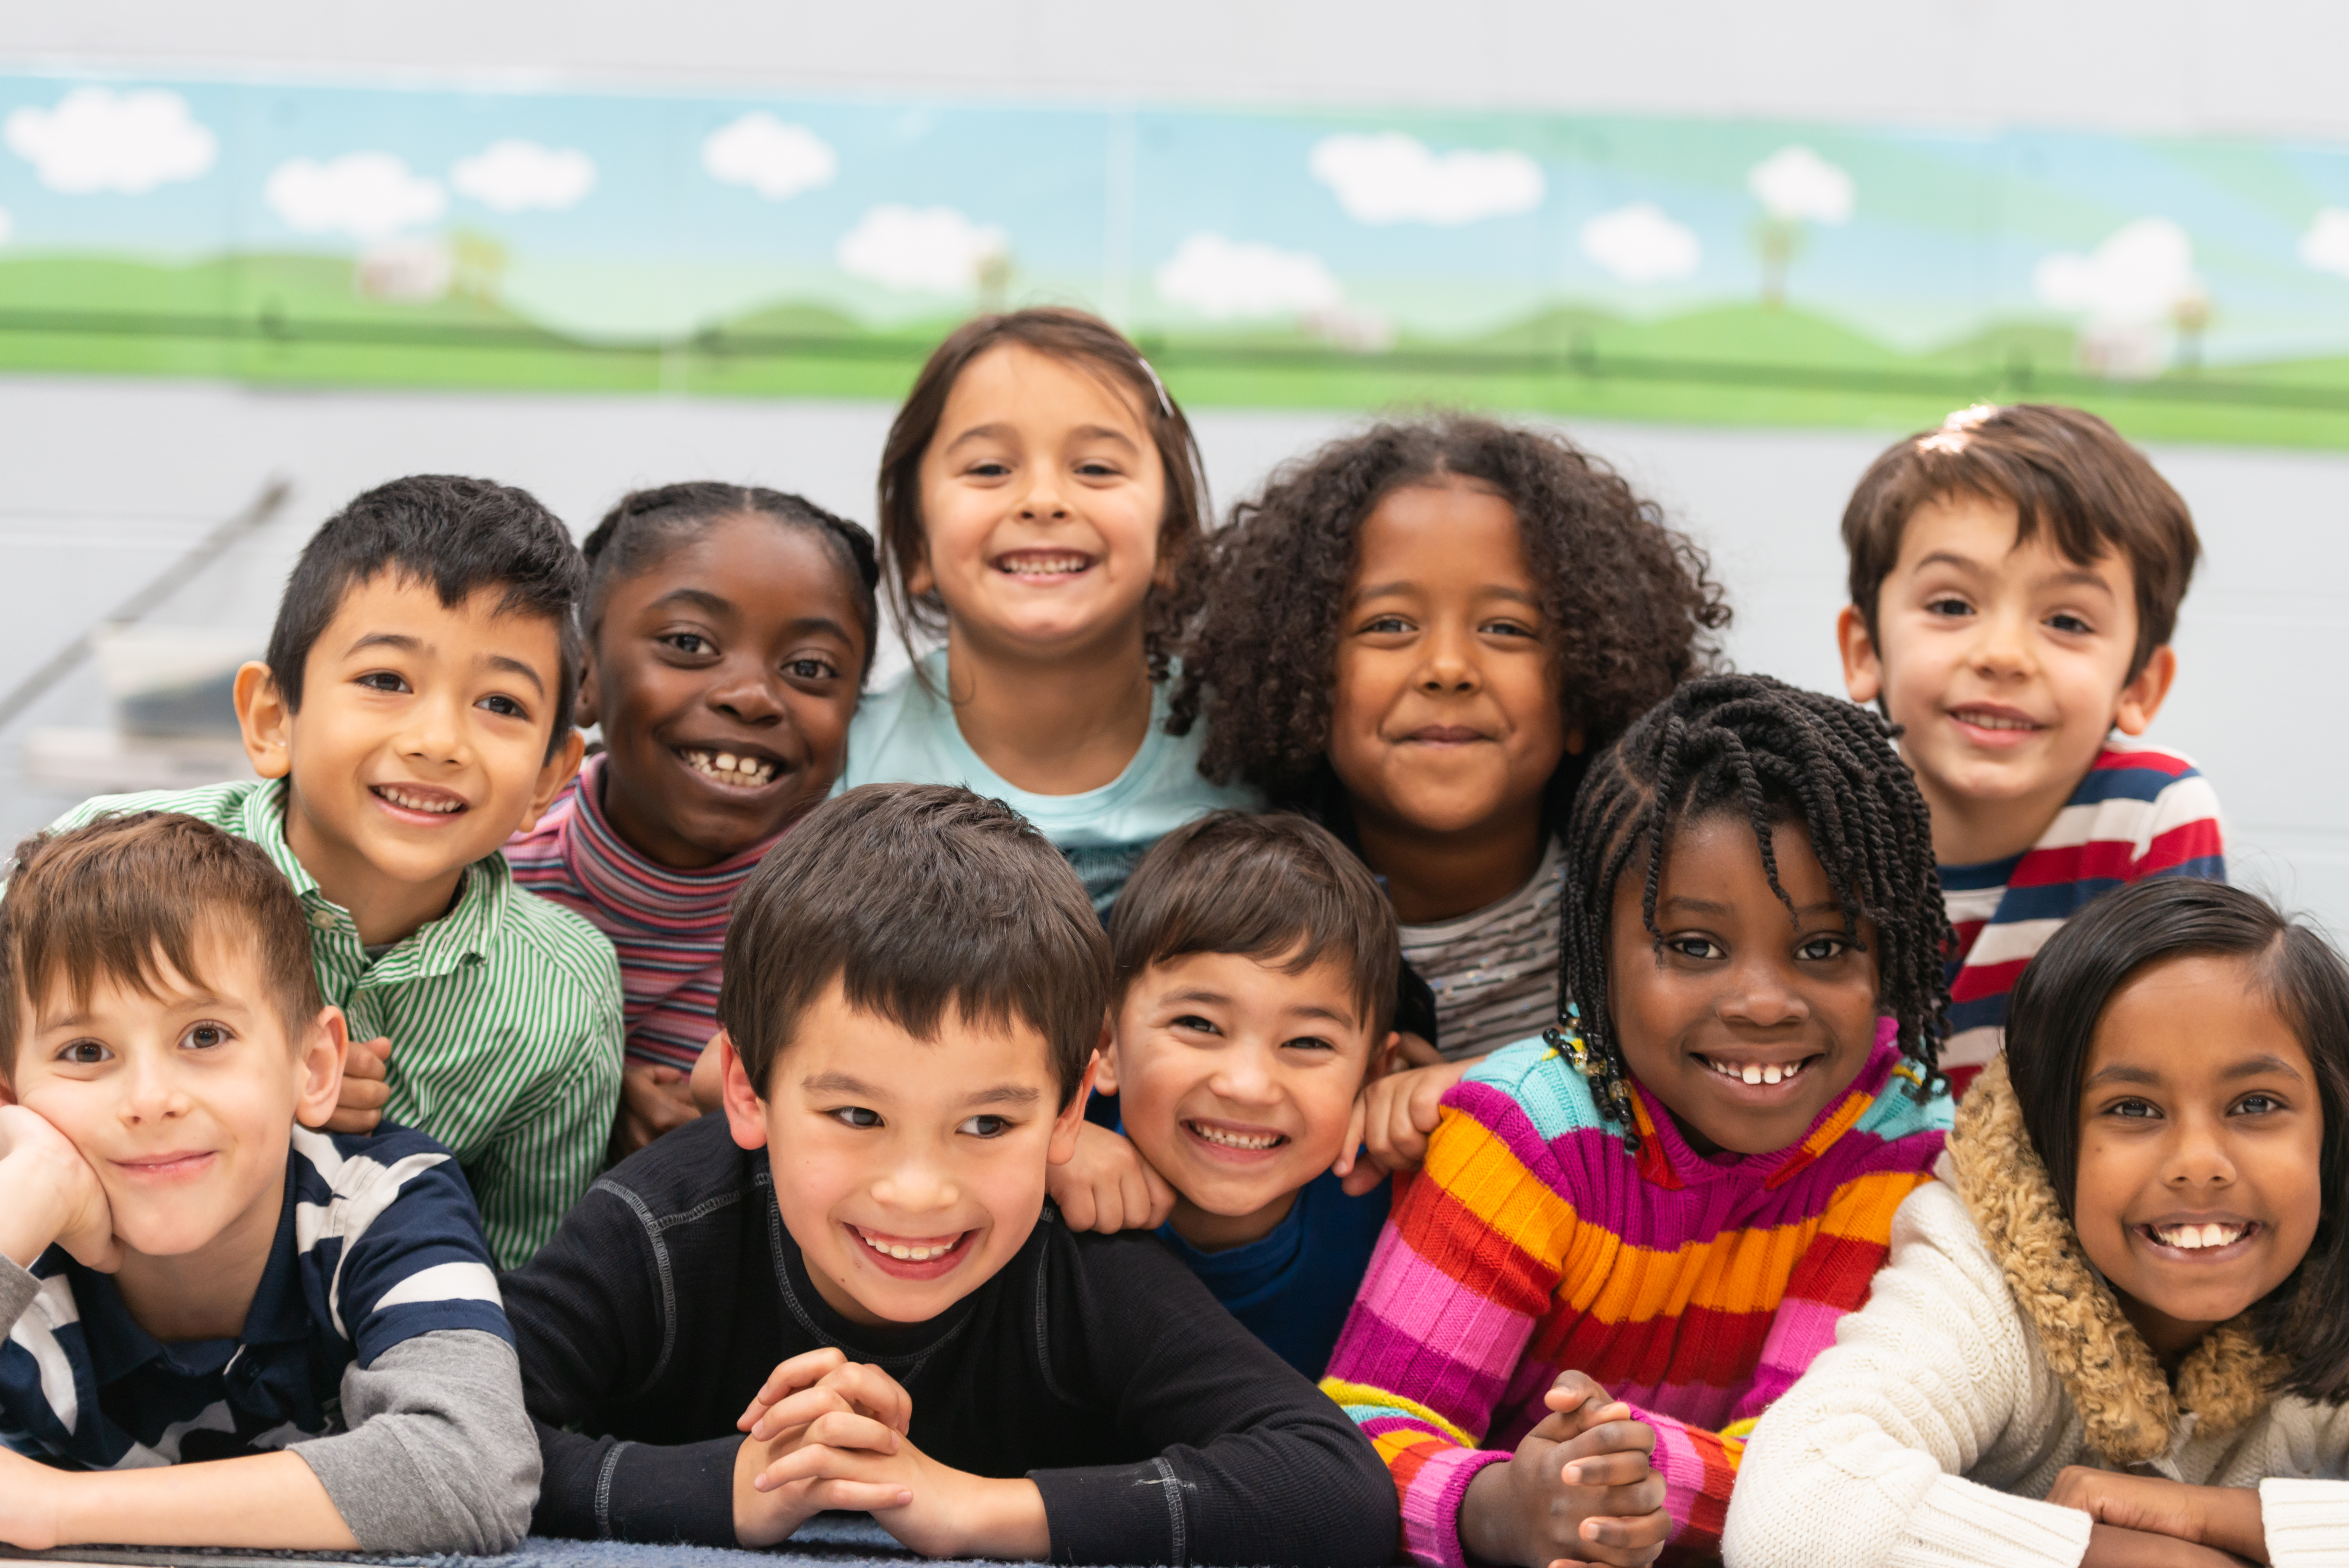 Group of multi ethnic children